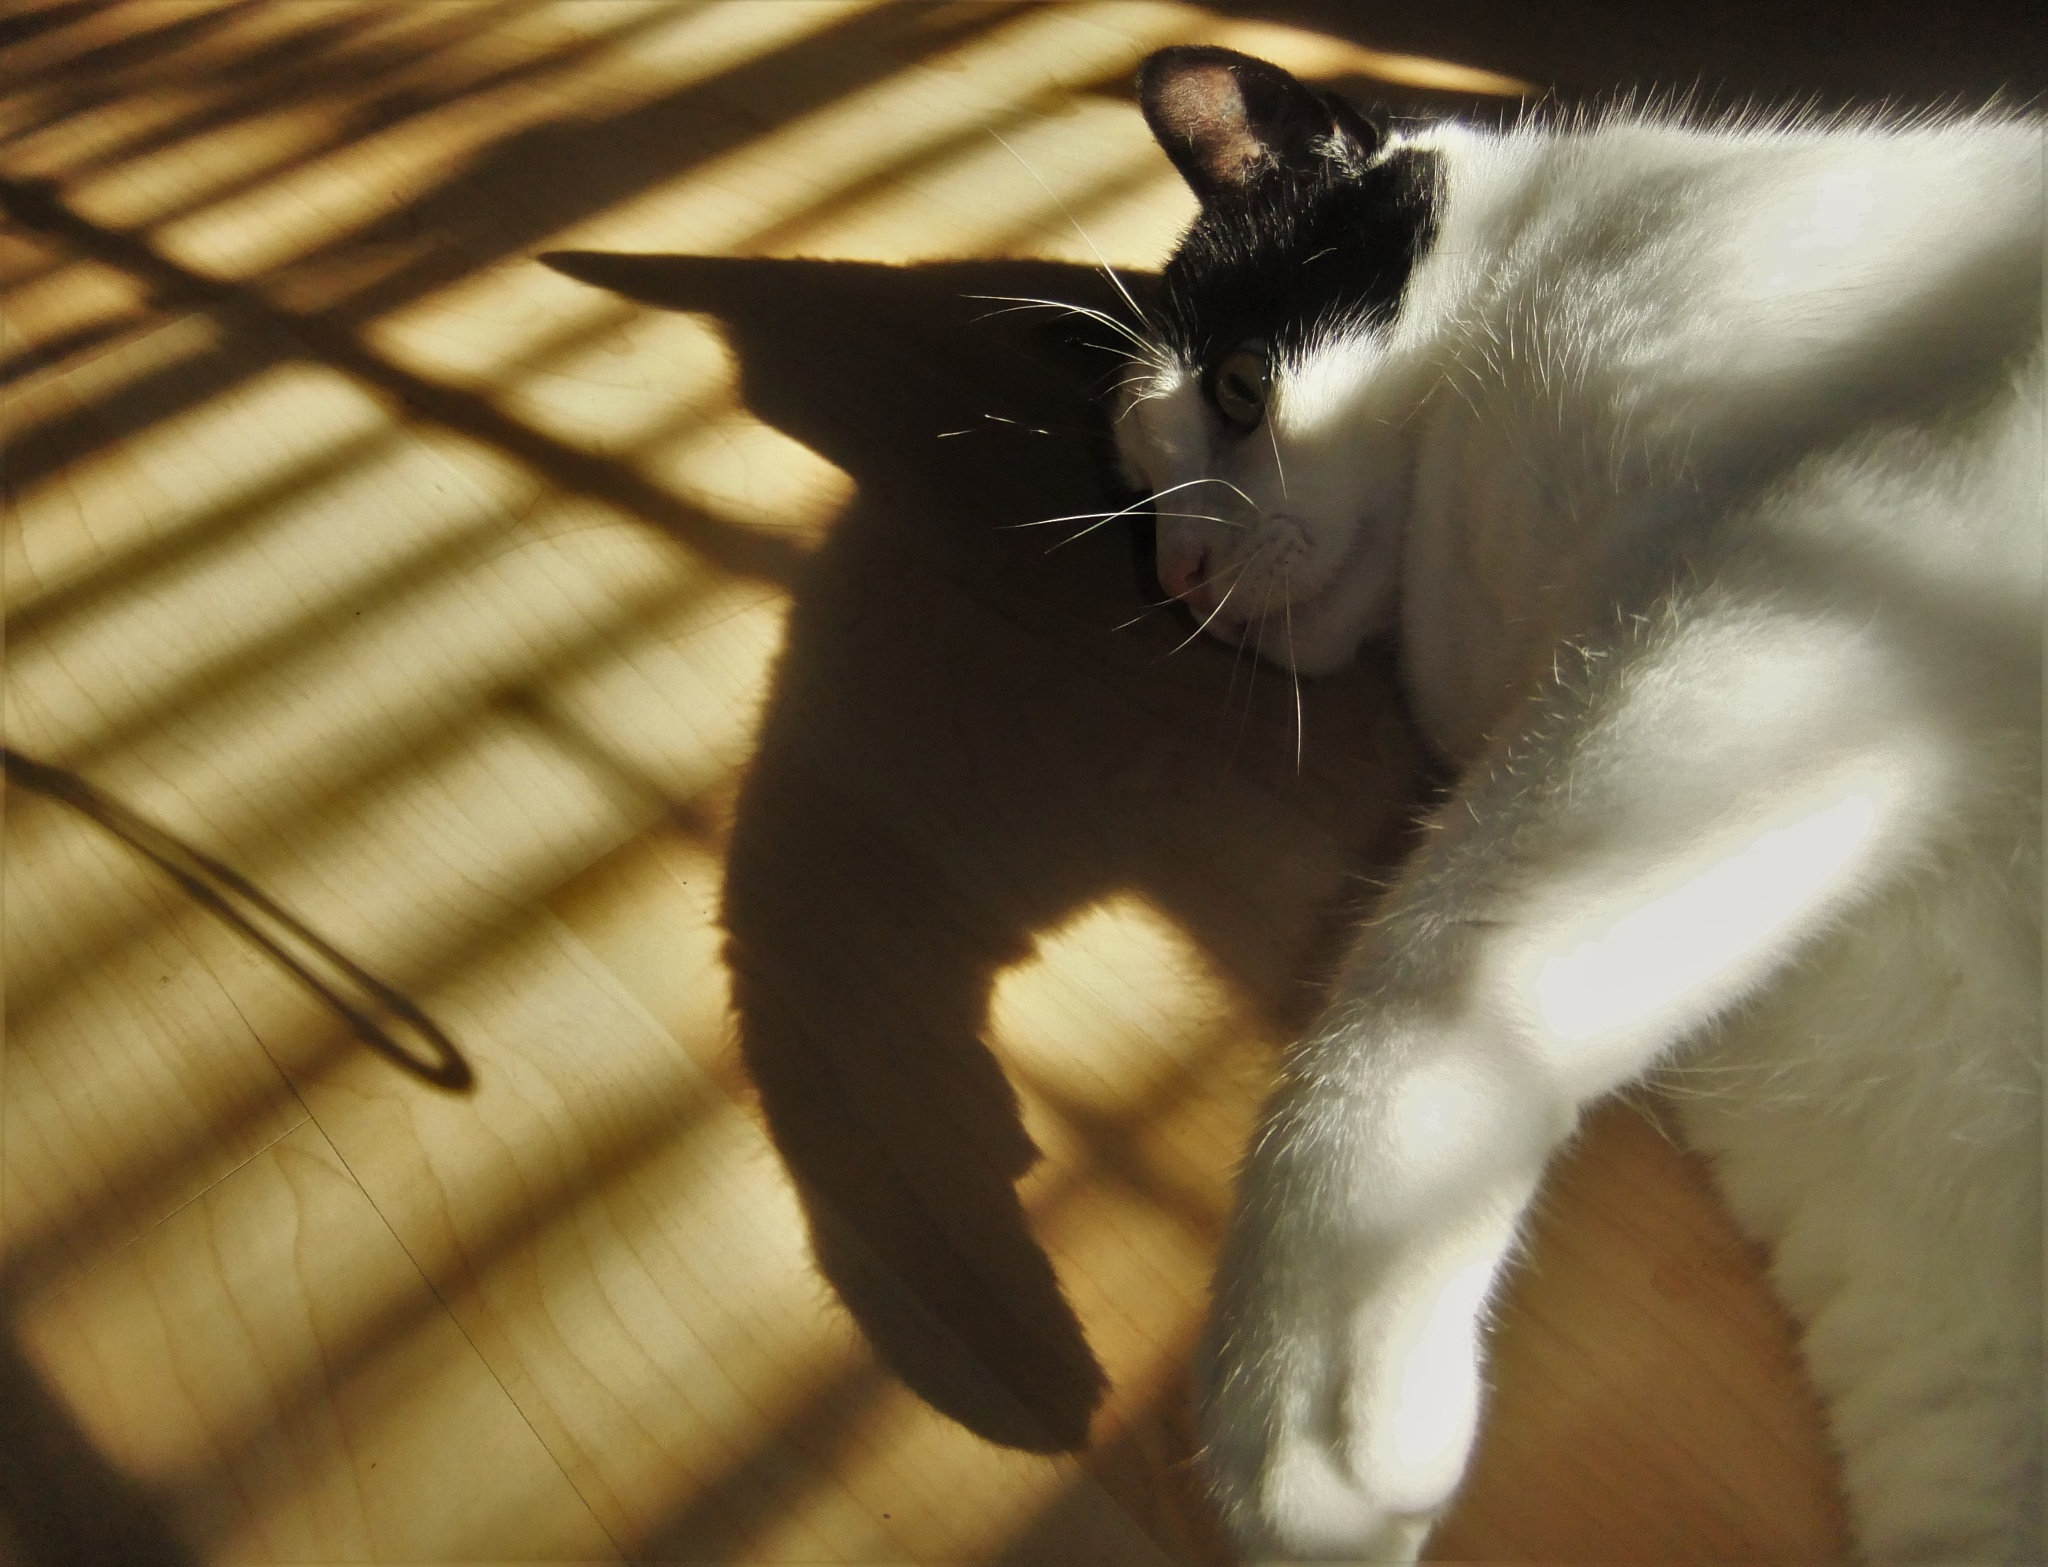 Cat & Shadow by Oliver Neumann